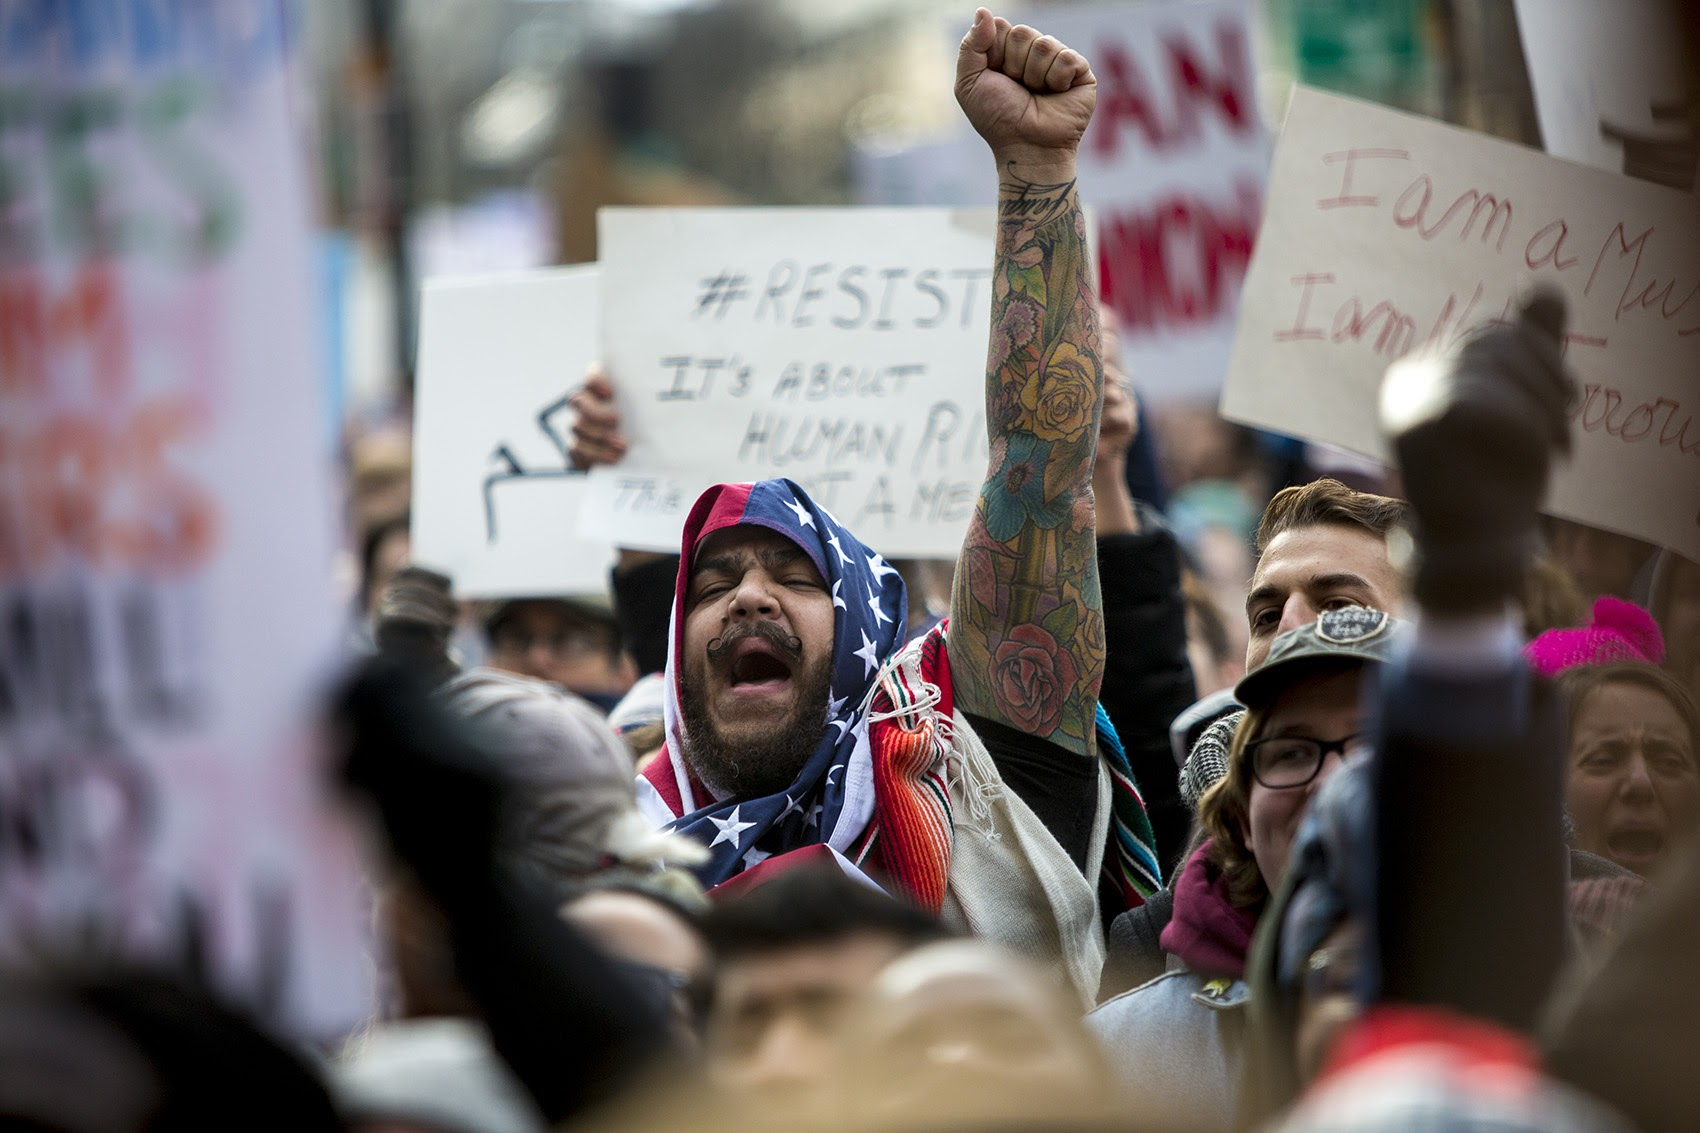 A man cheered during the rally in Copley Square. (Jesse Costa/WBUR)